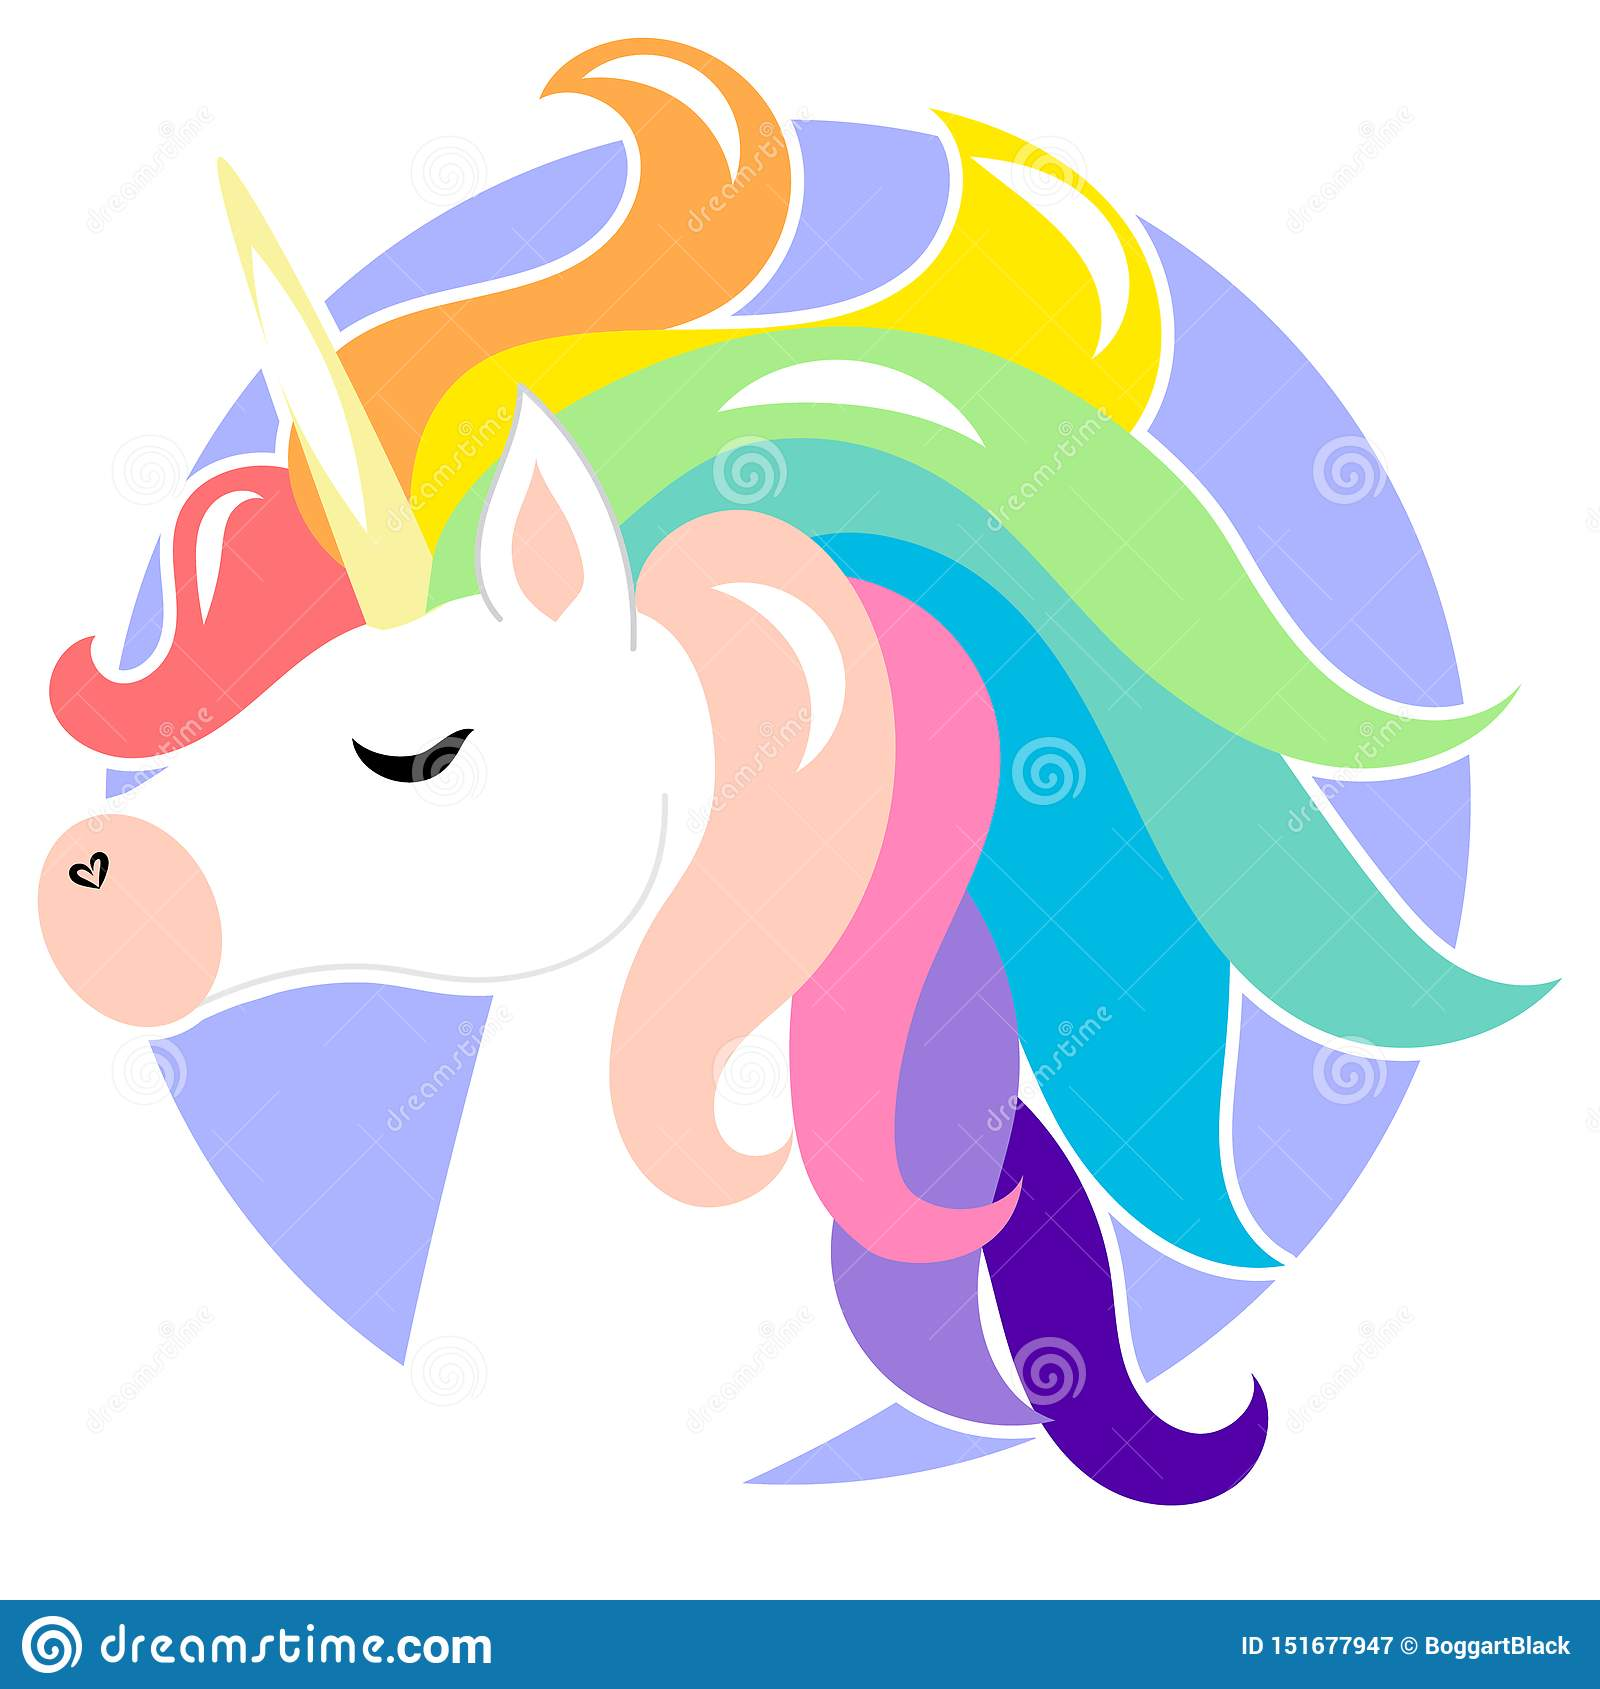 Cute face unicorn with rainbow hair. Vector cartoon character illustration. Design for child card, t-shirt. Girls, kid